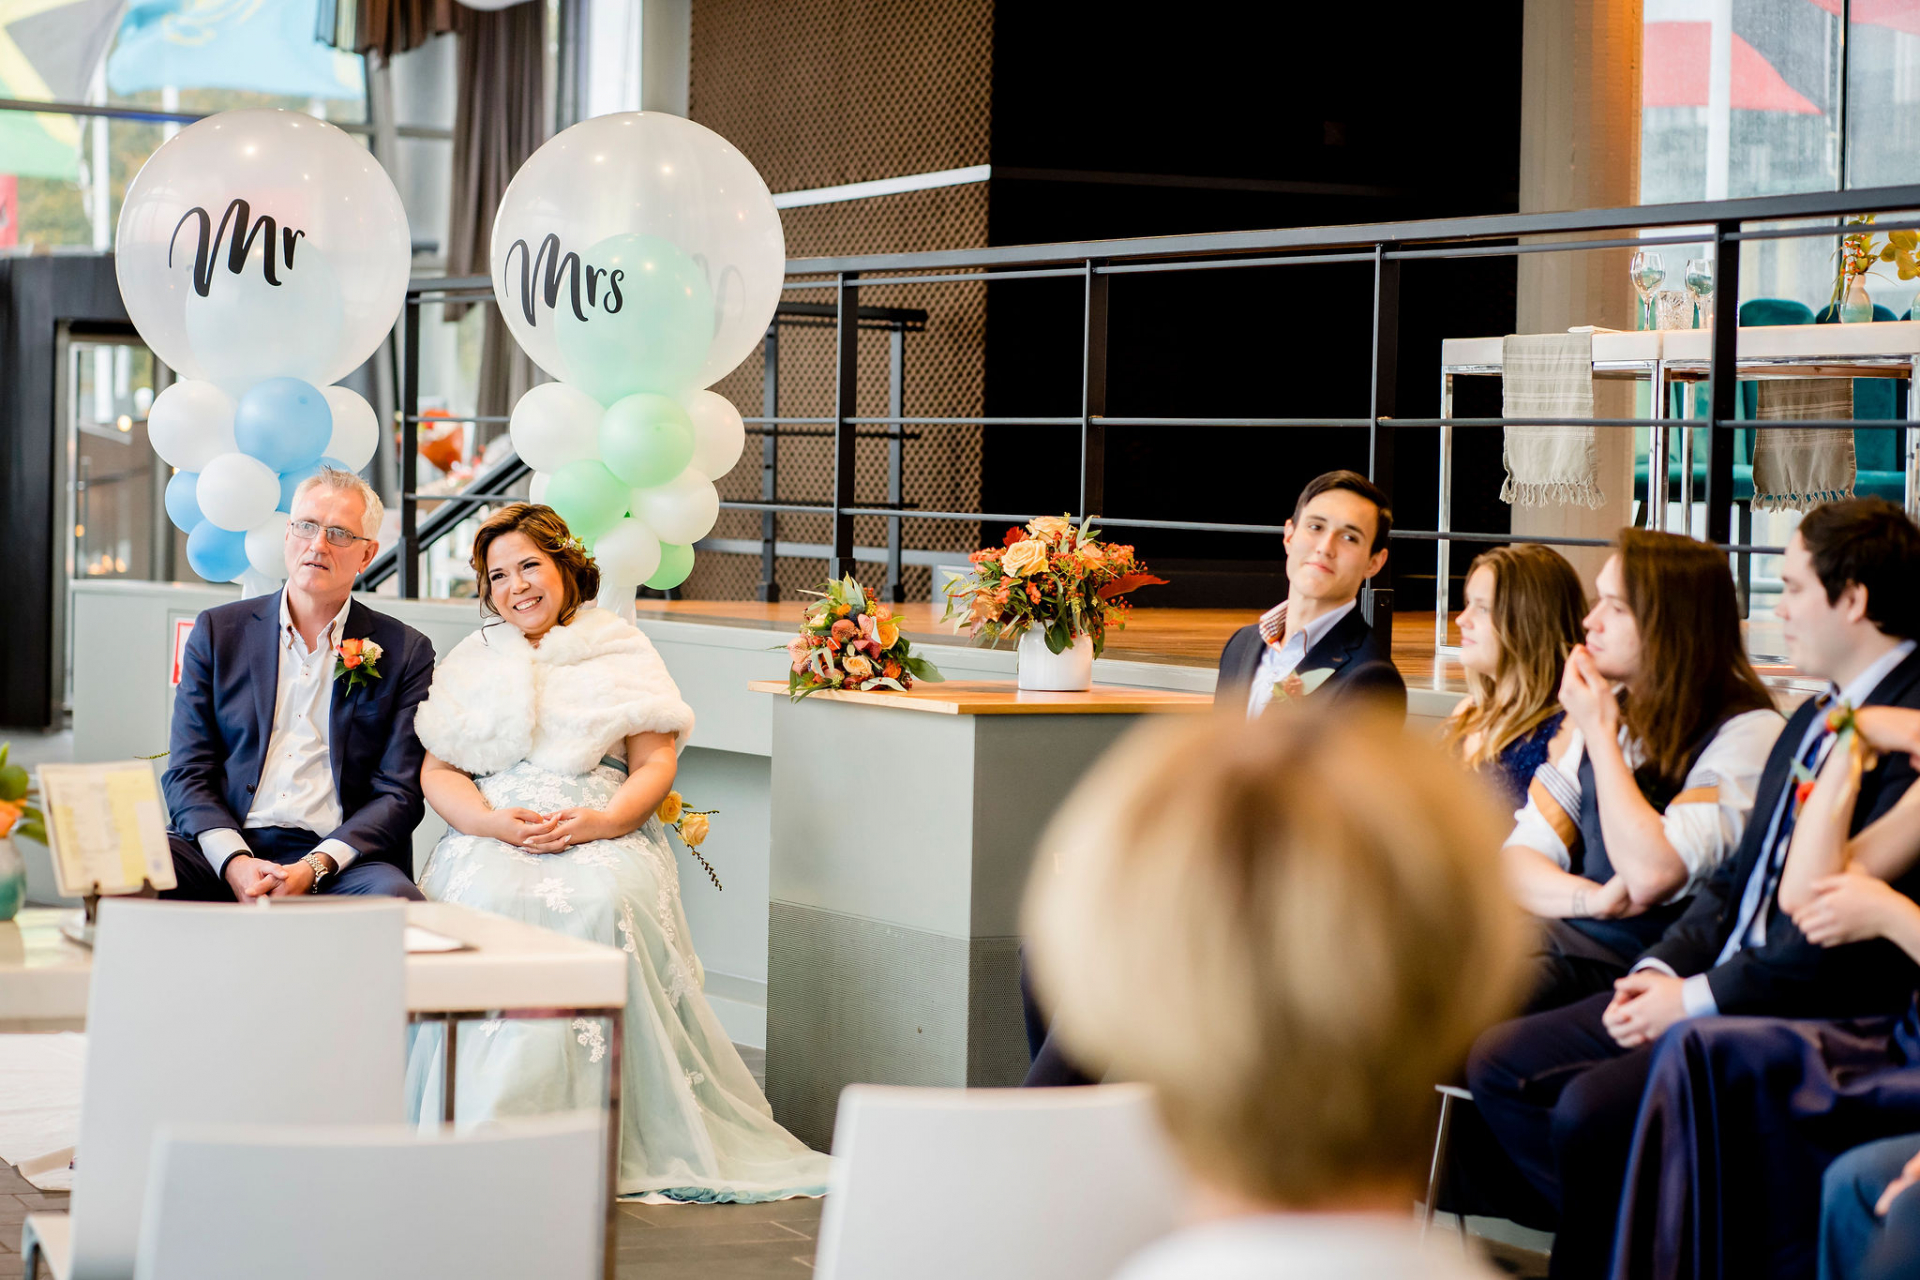 Rotterdam Netherlands Wedding Photographers | floor-to-ceiling windows and the buoyant balloons created a light and airy atmosphere for the event